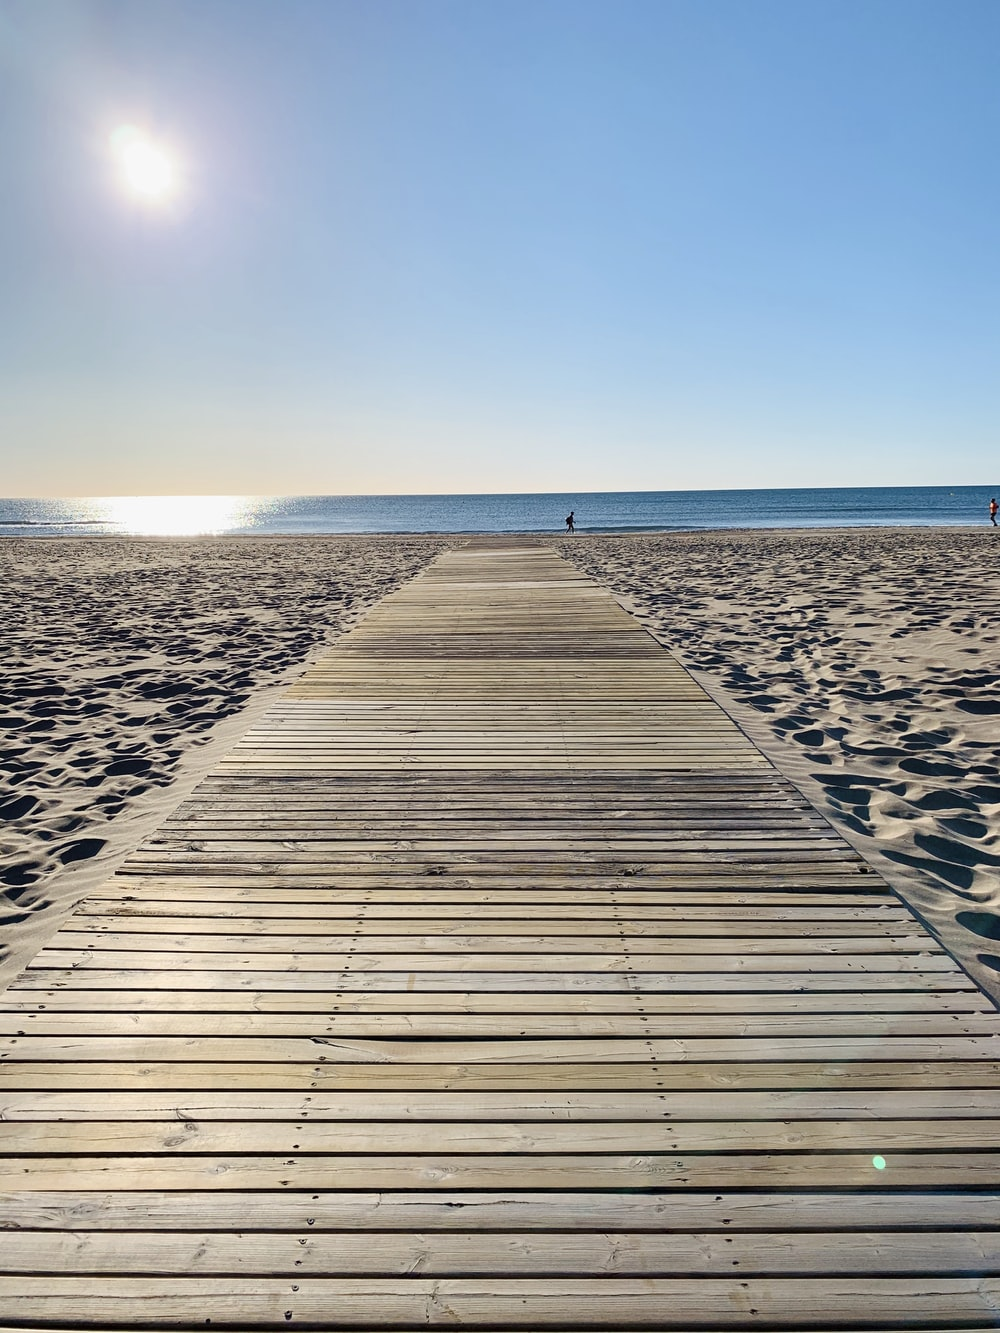 brown wooden dock on beach during daytime